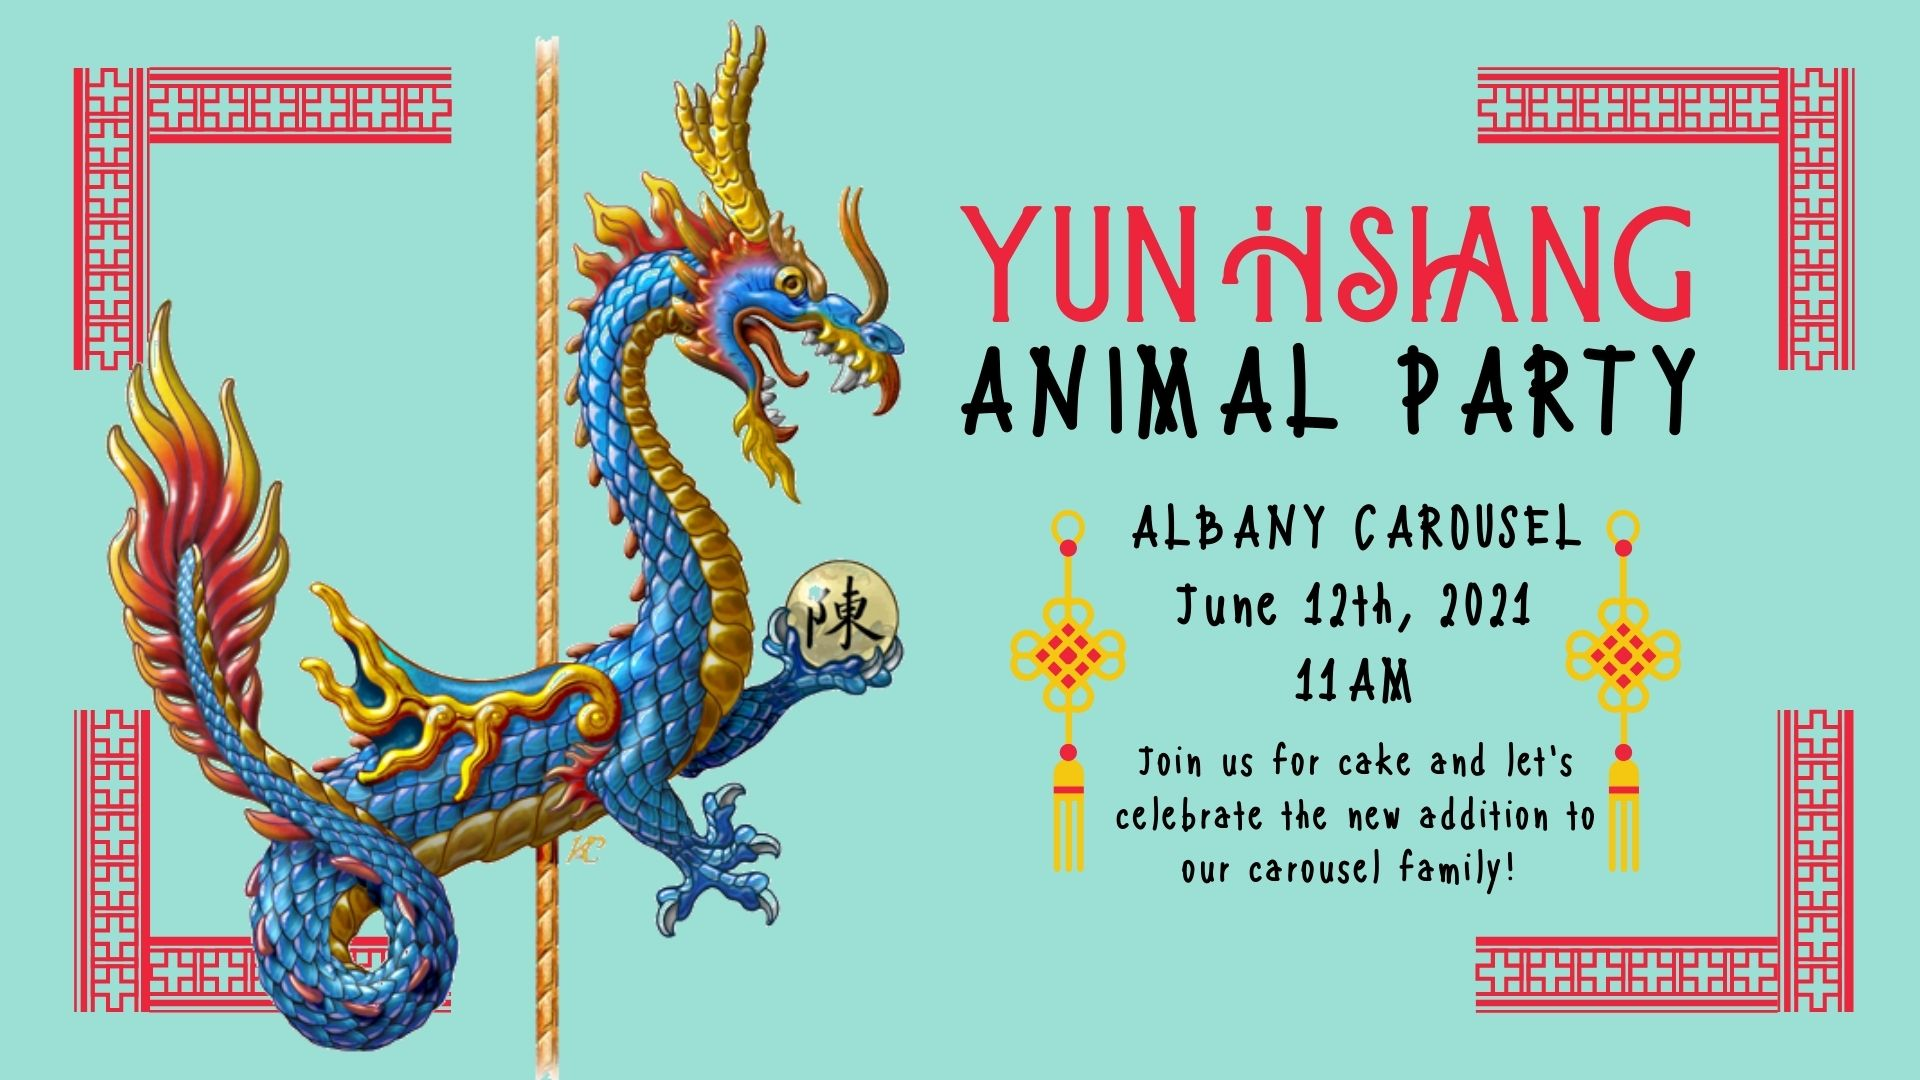 illustration of carousel dragon with event information, Albany, Oregon